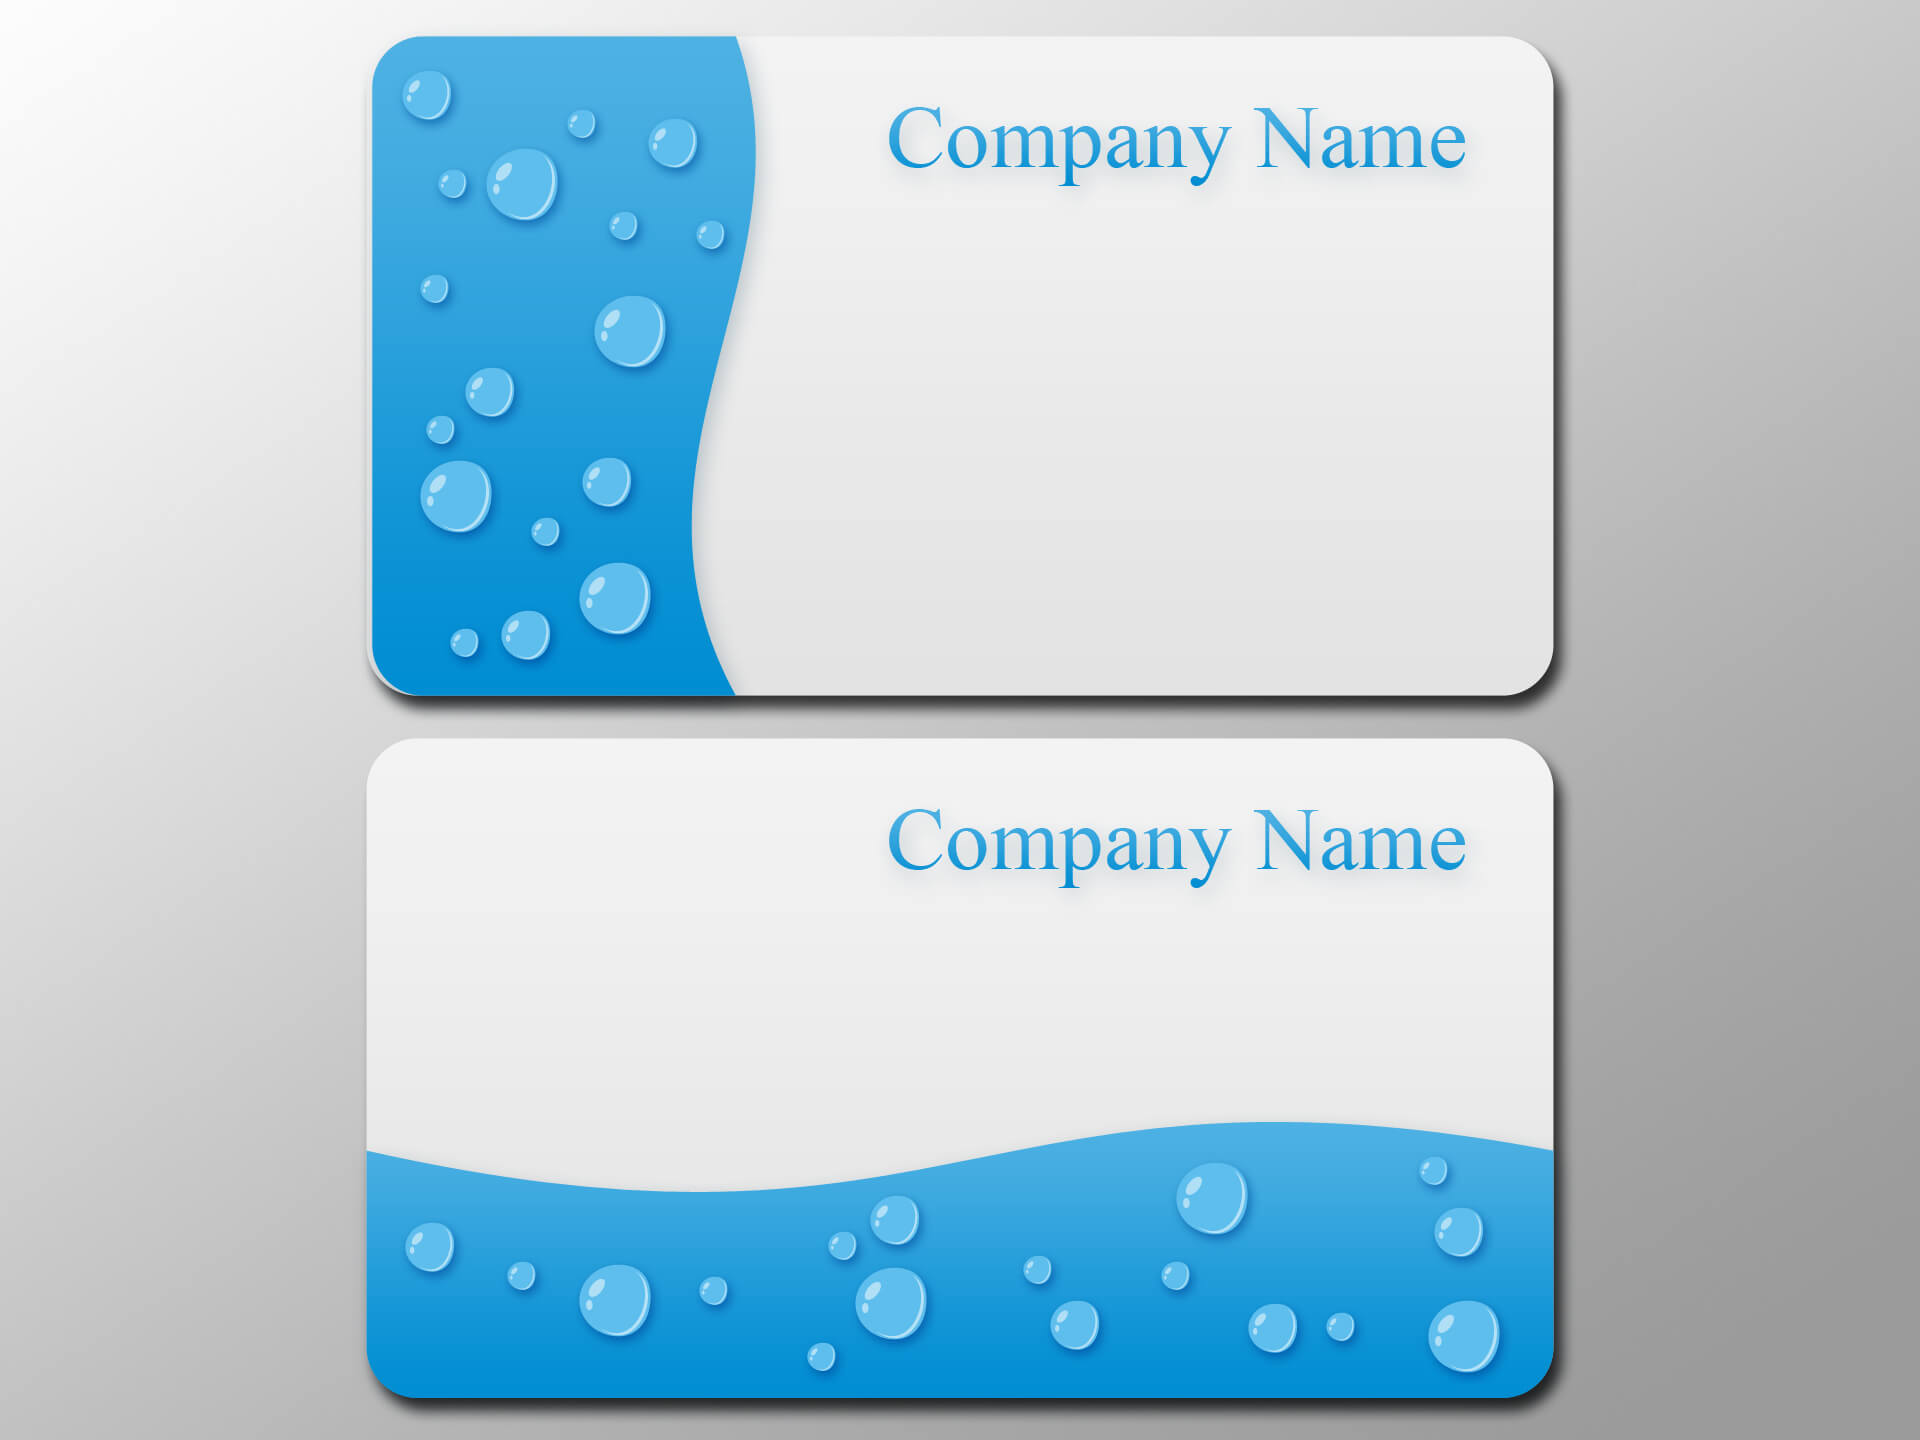 Business Card Template Photoshop - Blank Business Card For Blank Business Card Template Download